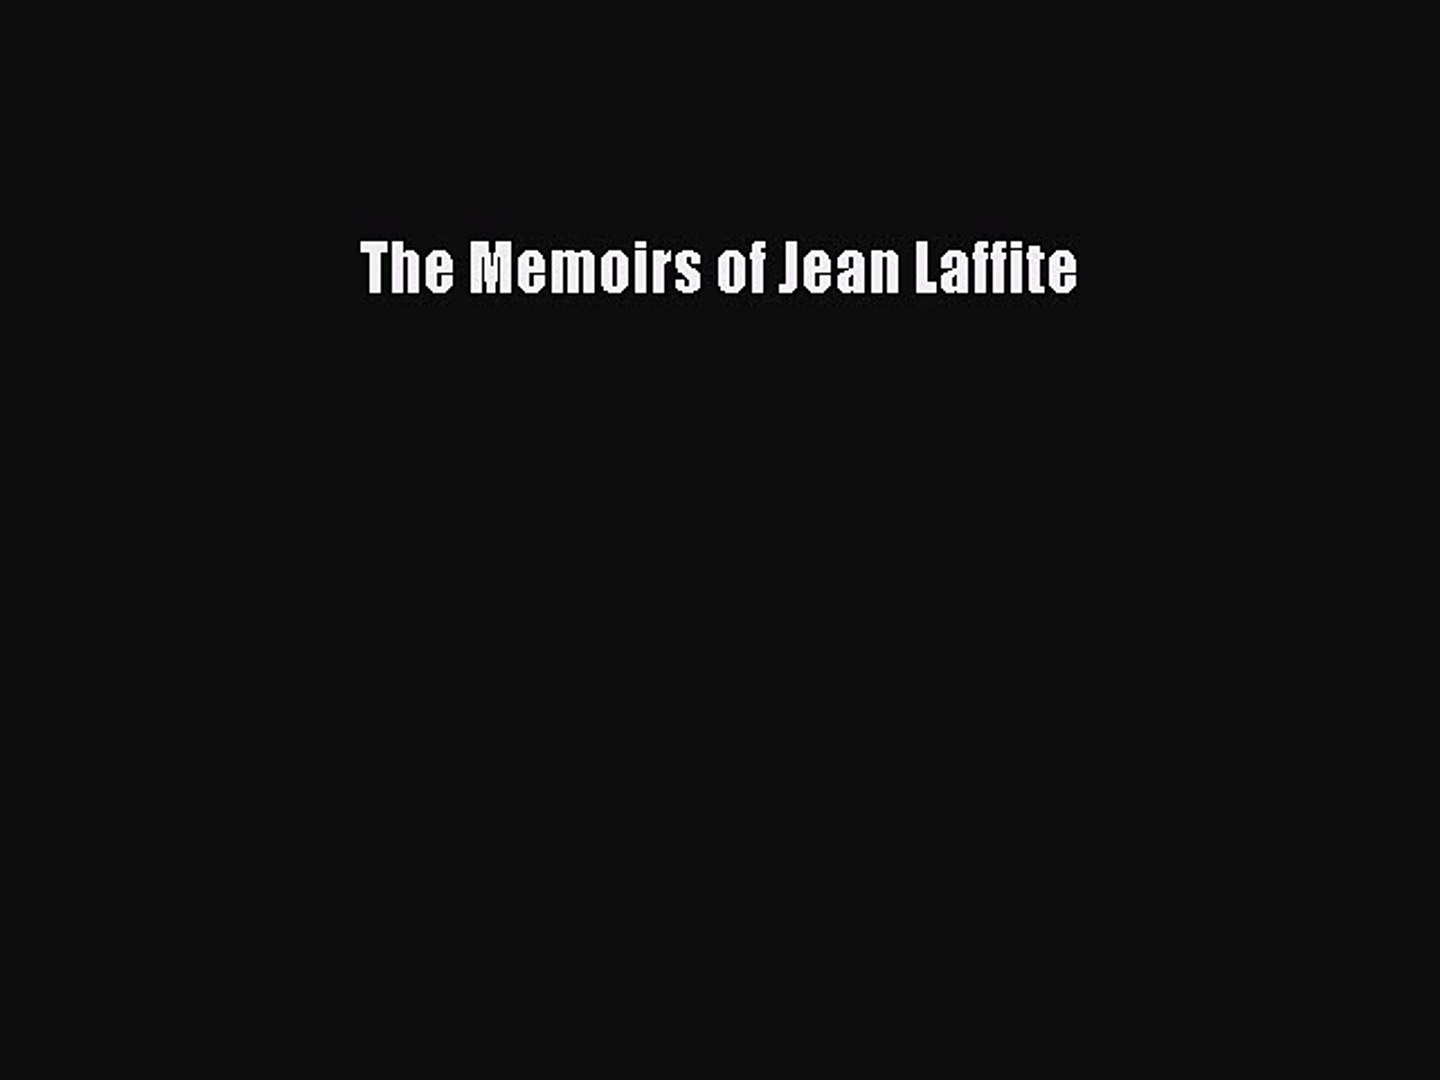 The Memoirs of Jean Laffite:from Le Journal de Jean Laffite